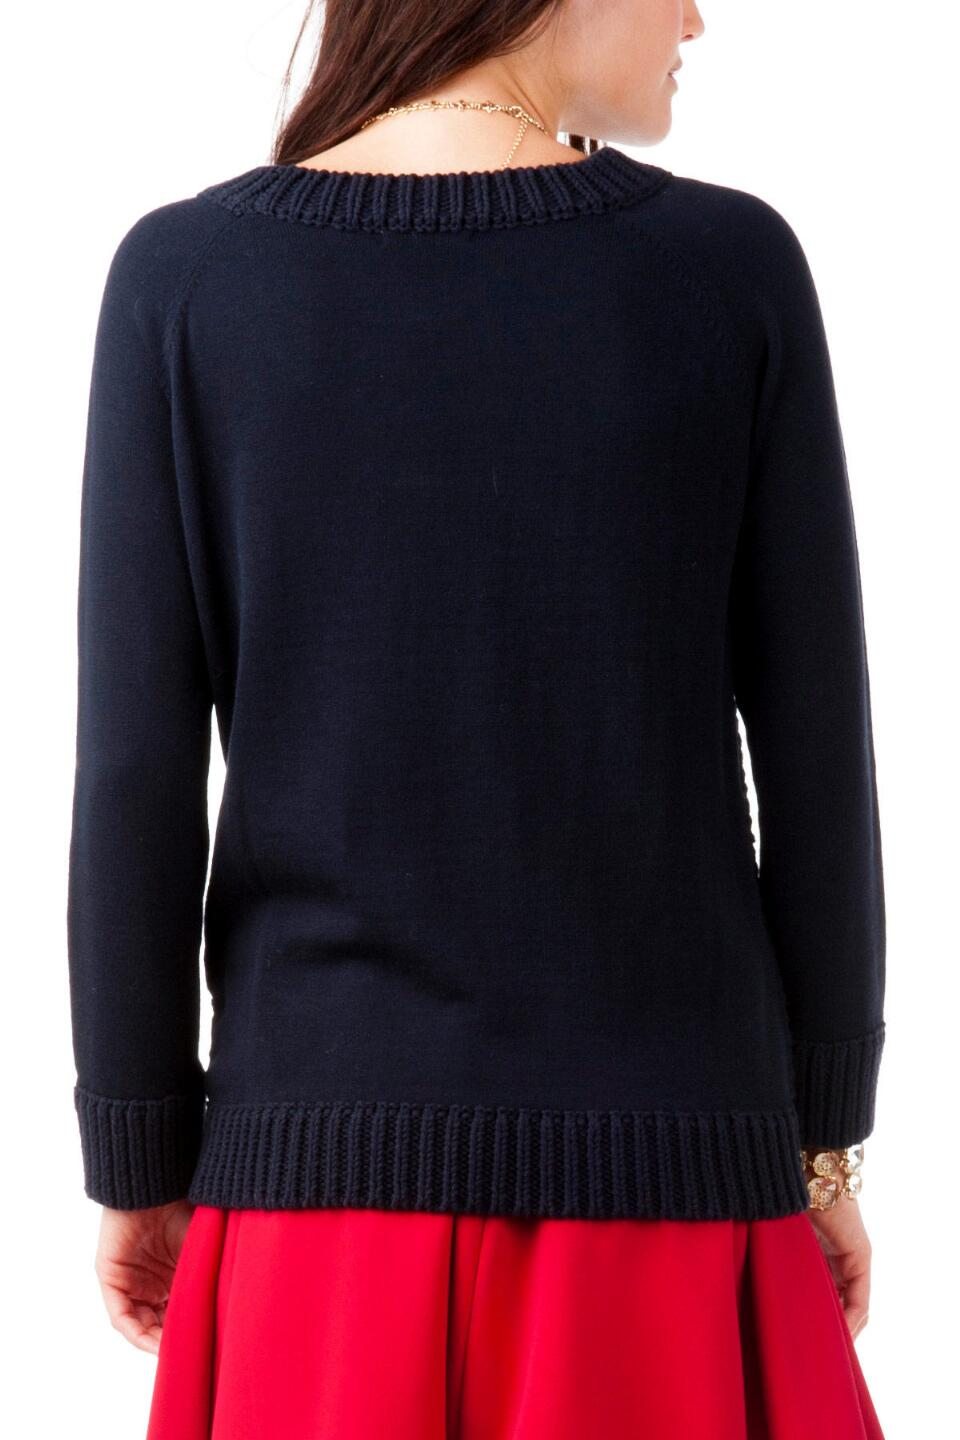 Sandy Springs Pullover Sweater -  navy-clback